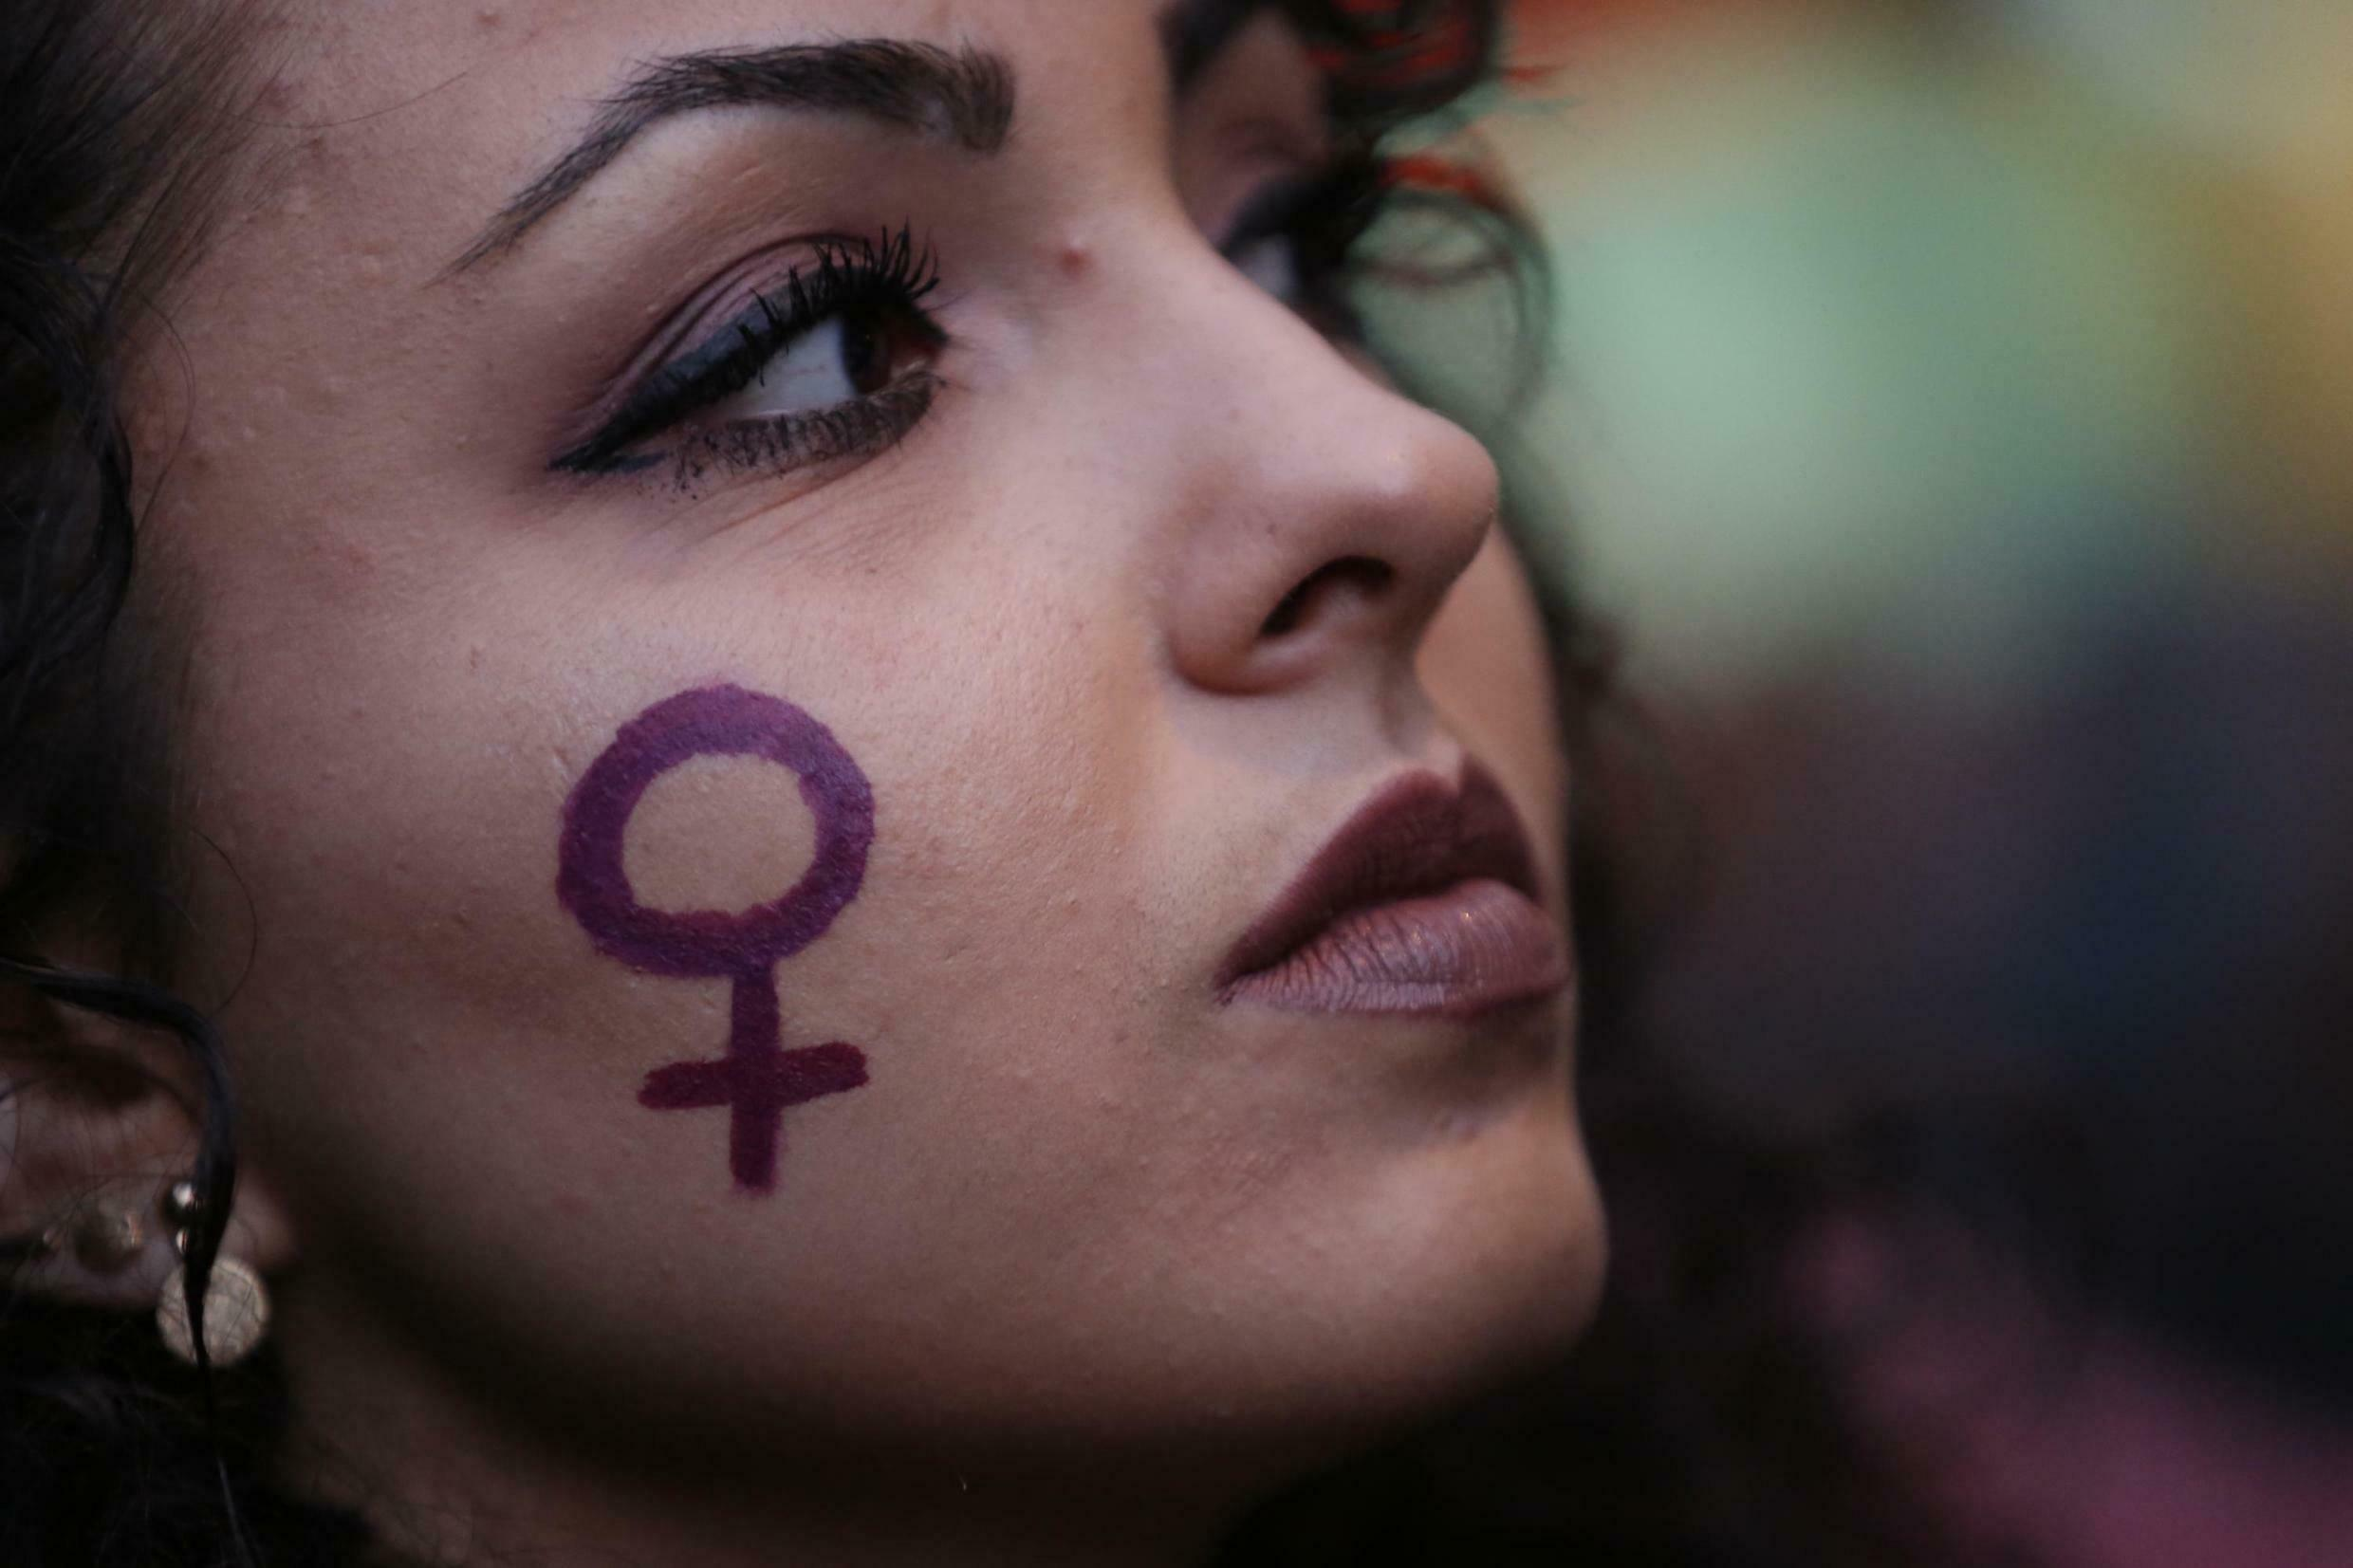 Spain has made the fight against femicide a priority